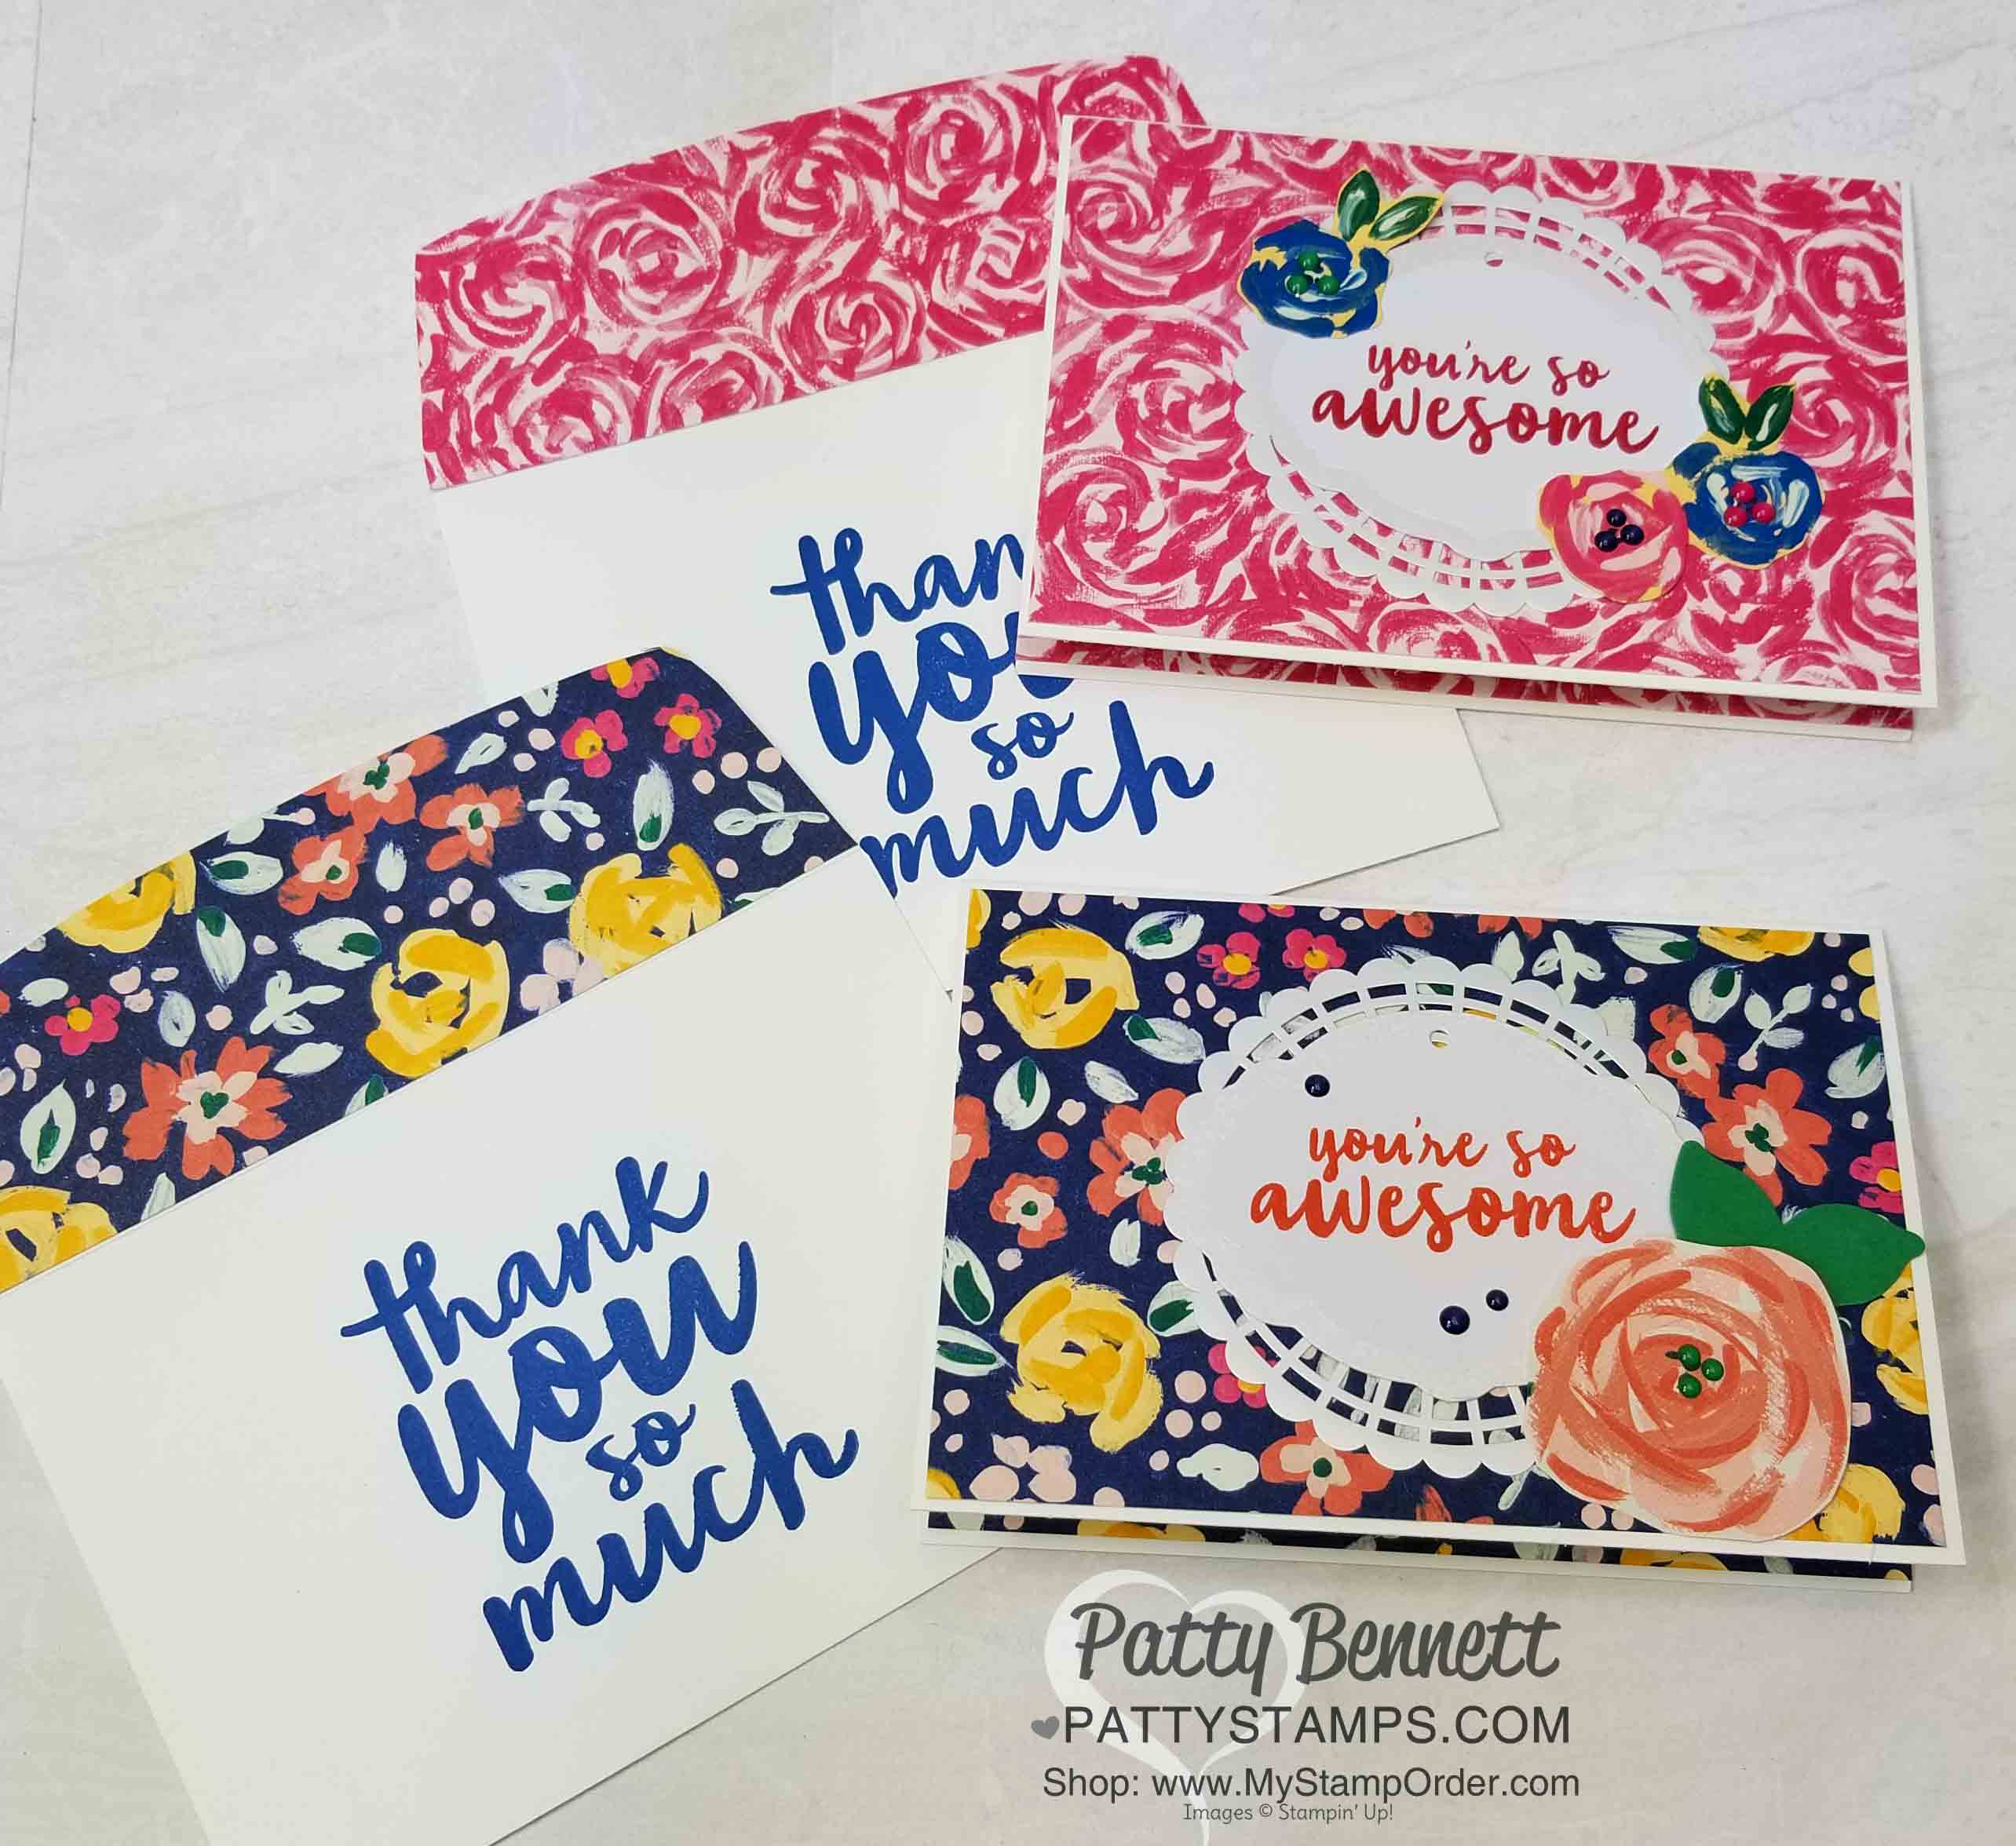 Garden Impressions Thank You Cards for OnStage